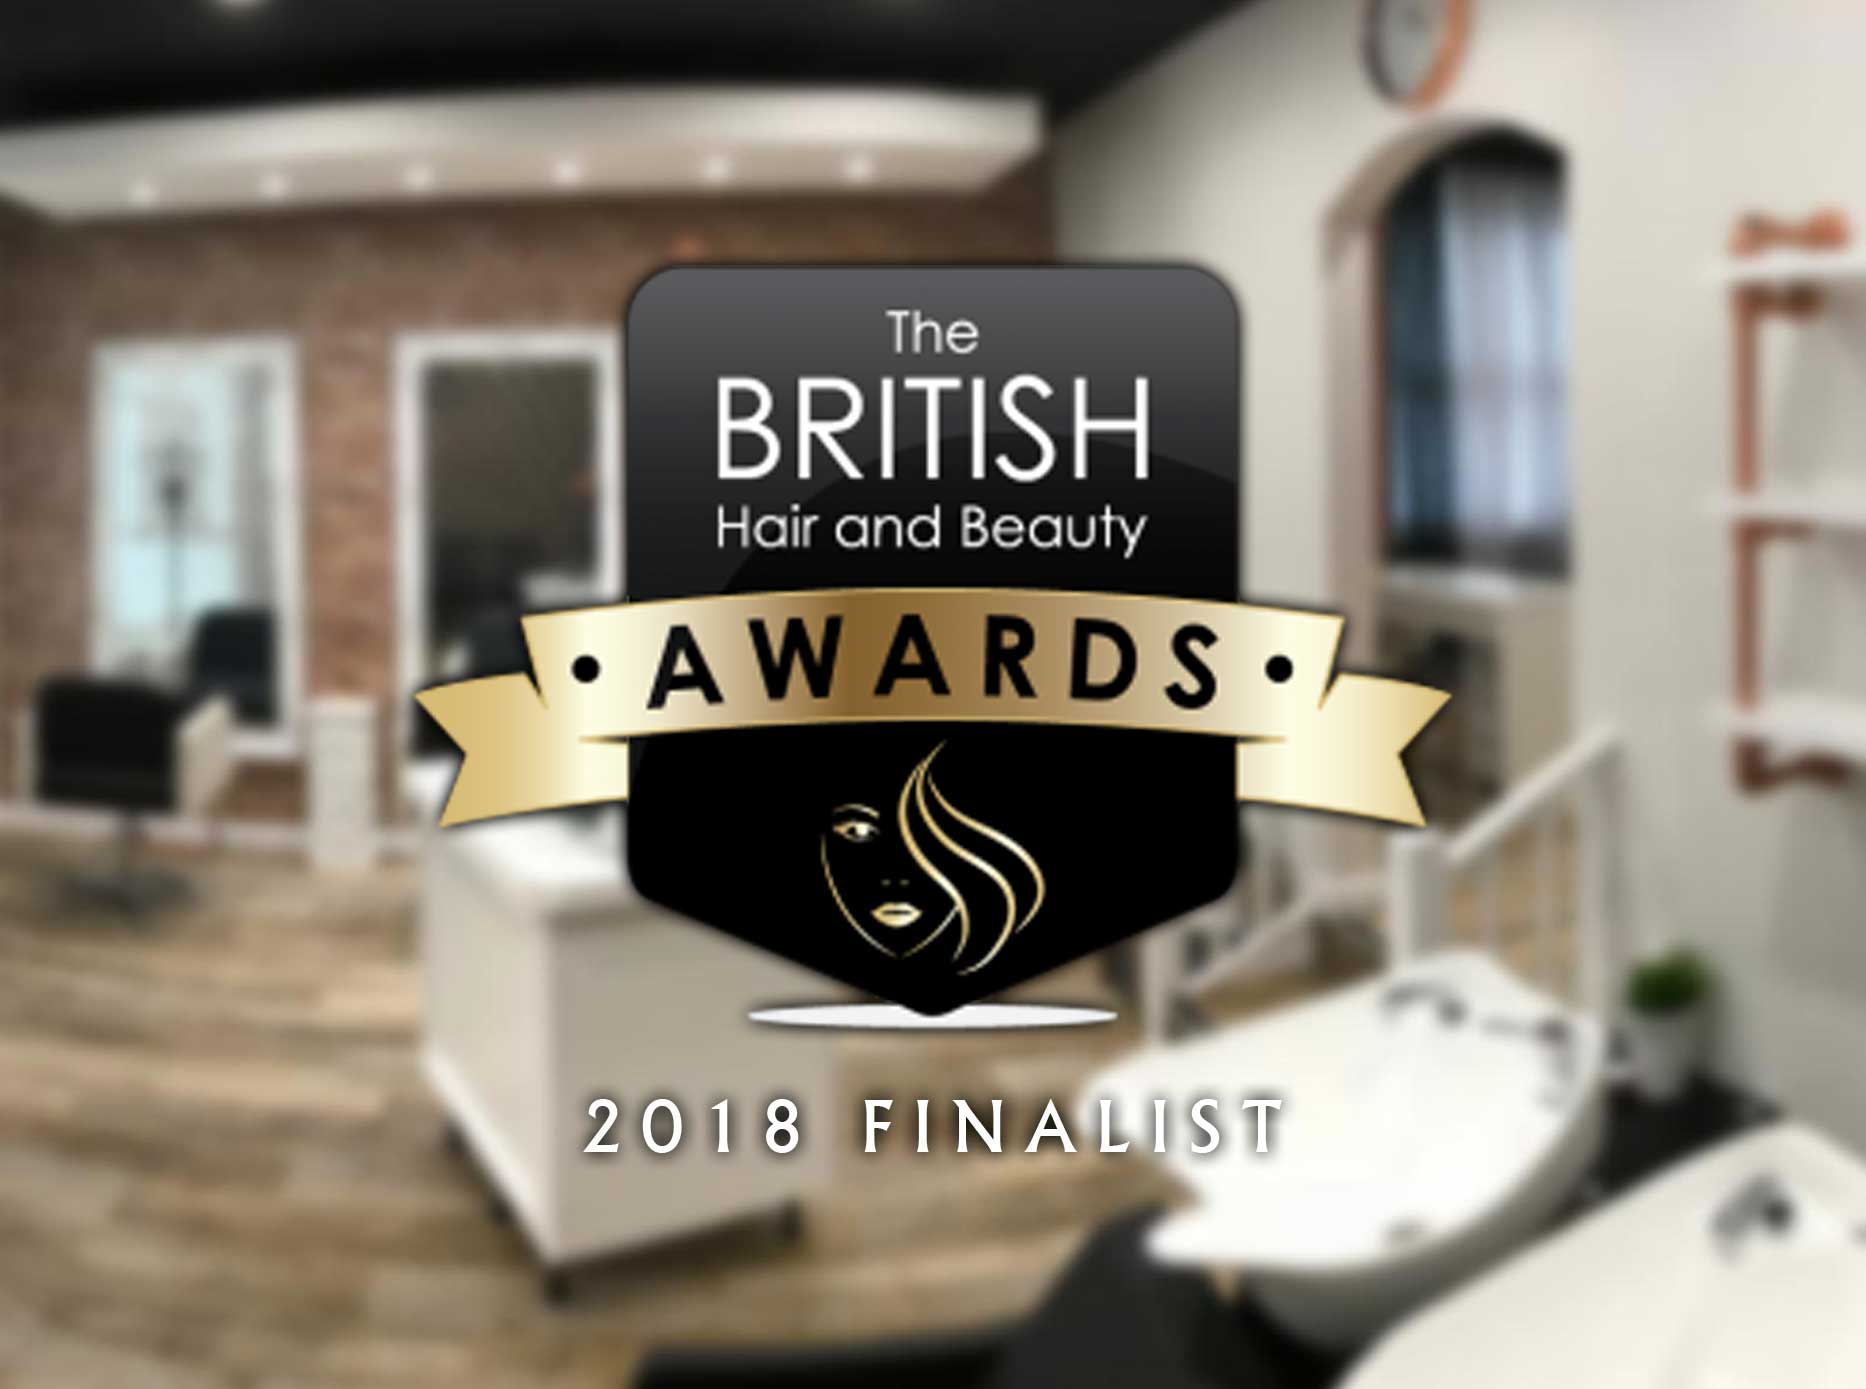 The British Hair & Beauty Awards 2018